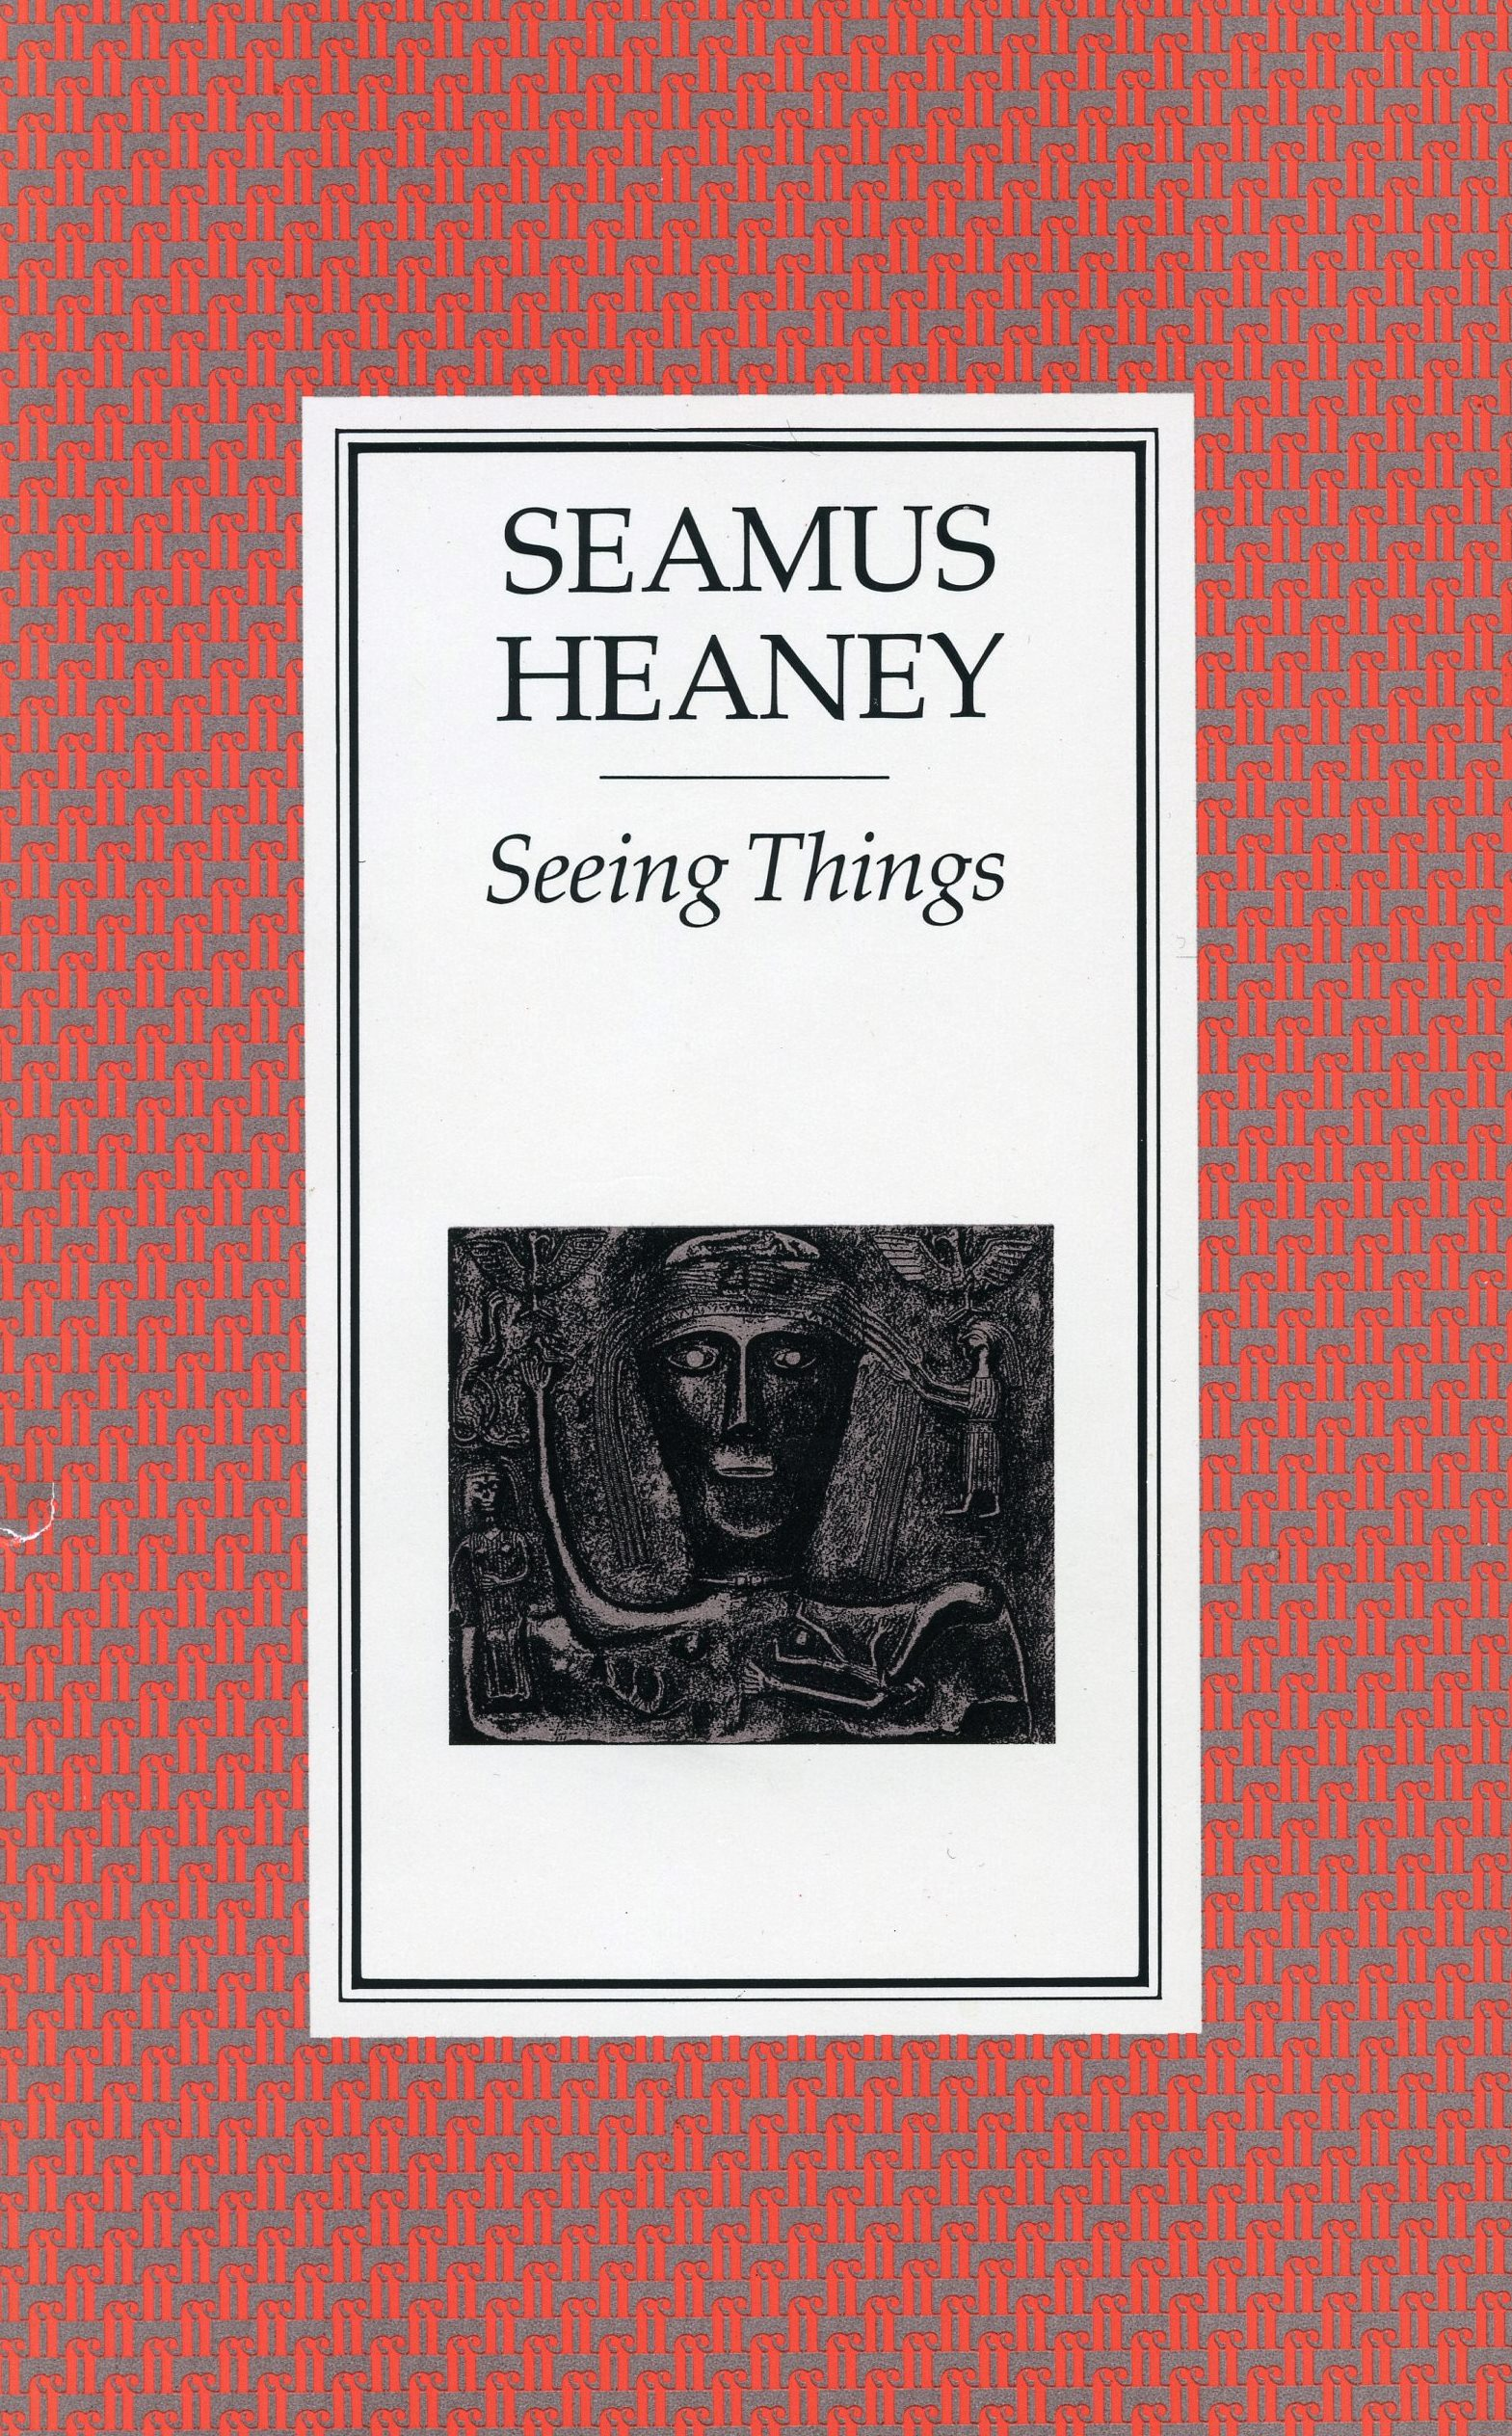 seamus heaney essay poetry Seamus heaney paints a picture of ireland through his poems, at times describing its culture and at other times its politics in poems like 'digging' and 'the follower' he ascribes a sense of dignity to the act of farming, comparing it to the art of writing poetry northern ireland, where heaney was.